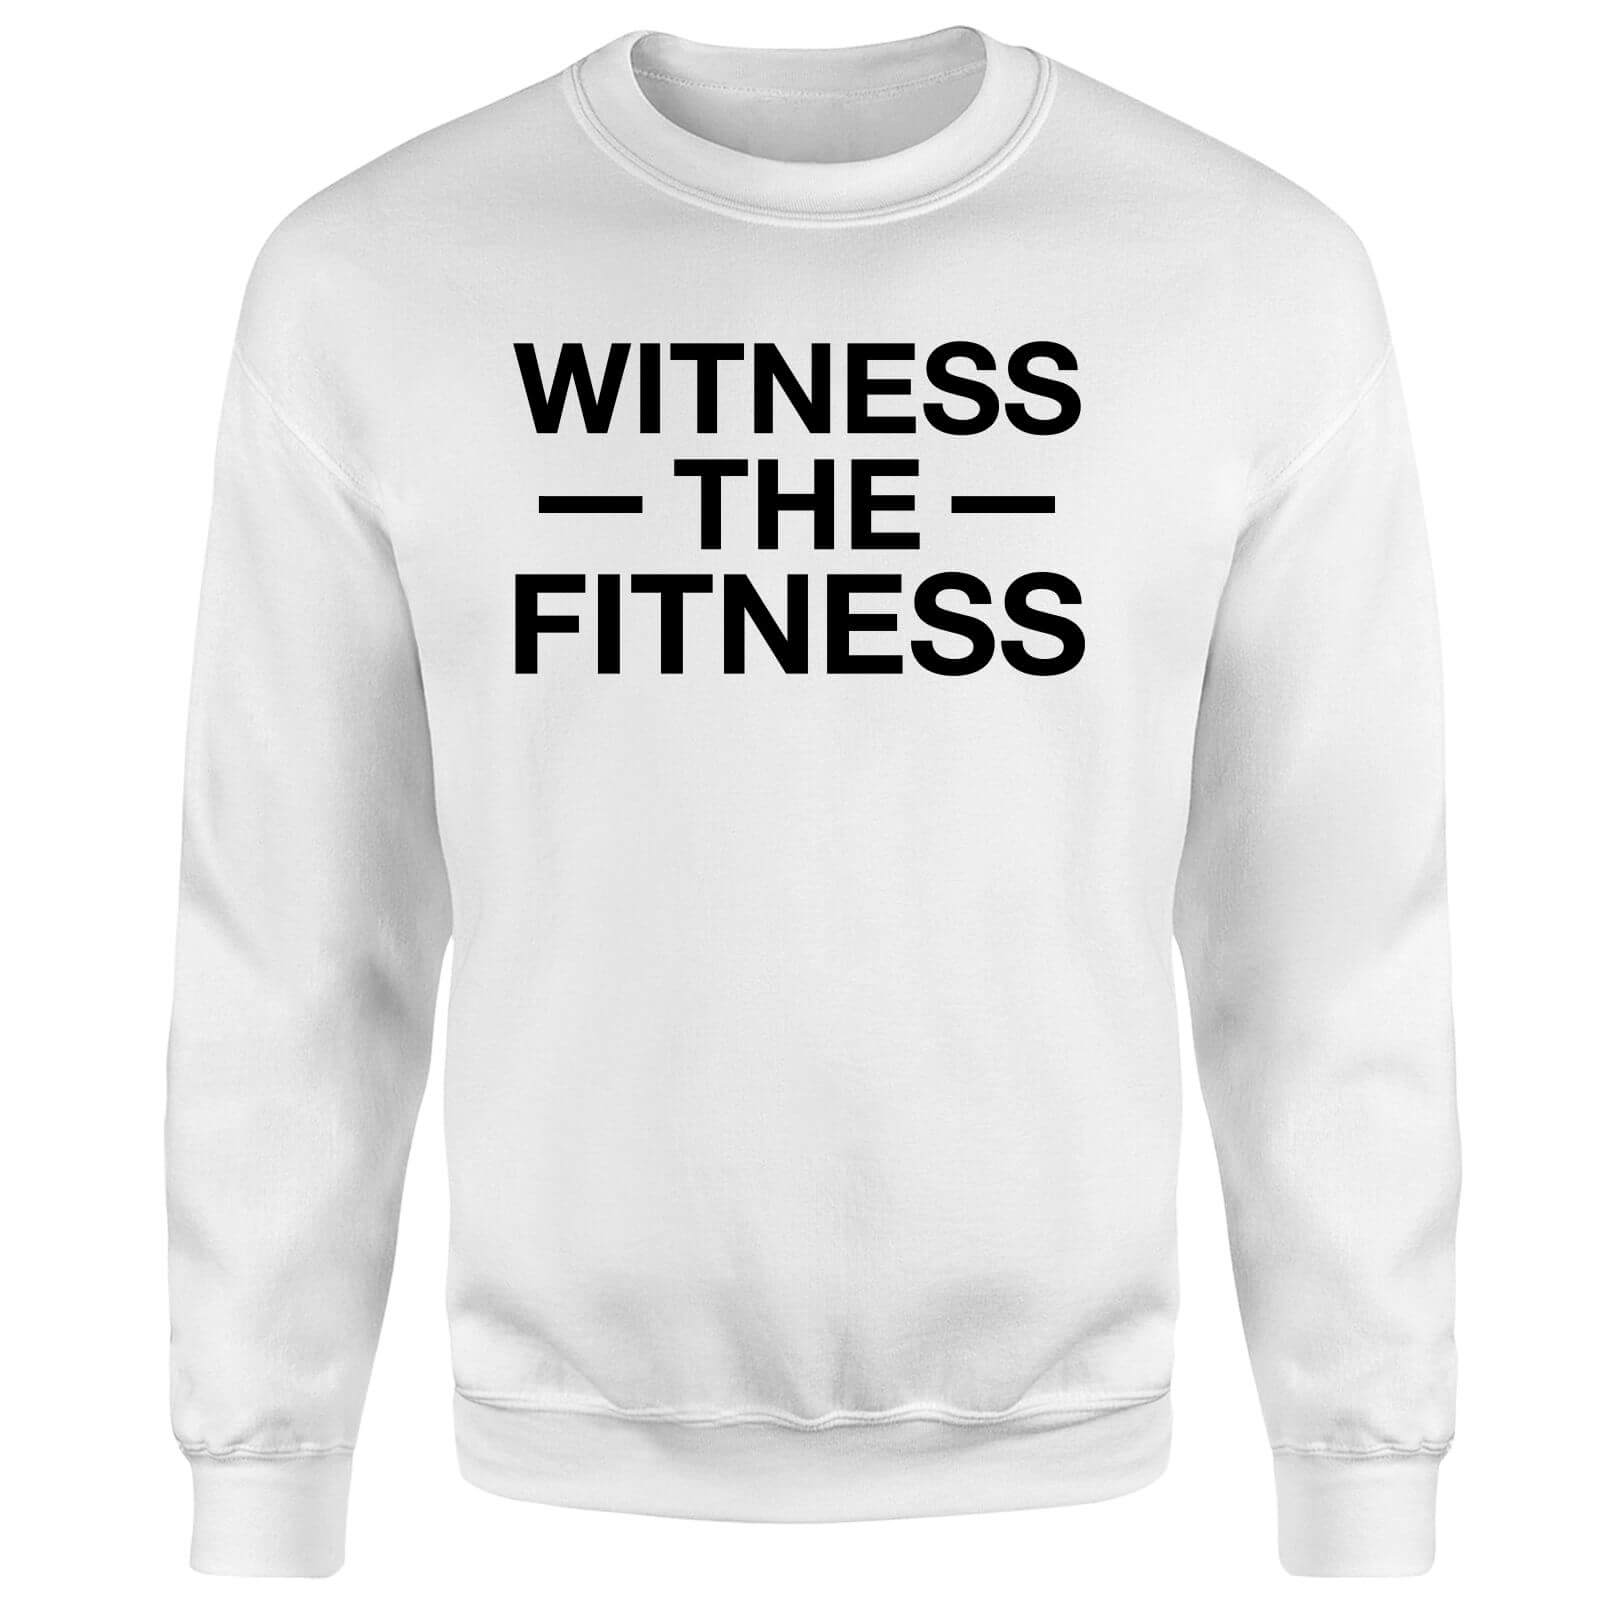 Witness the Fitness Sweatshirt - White